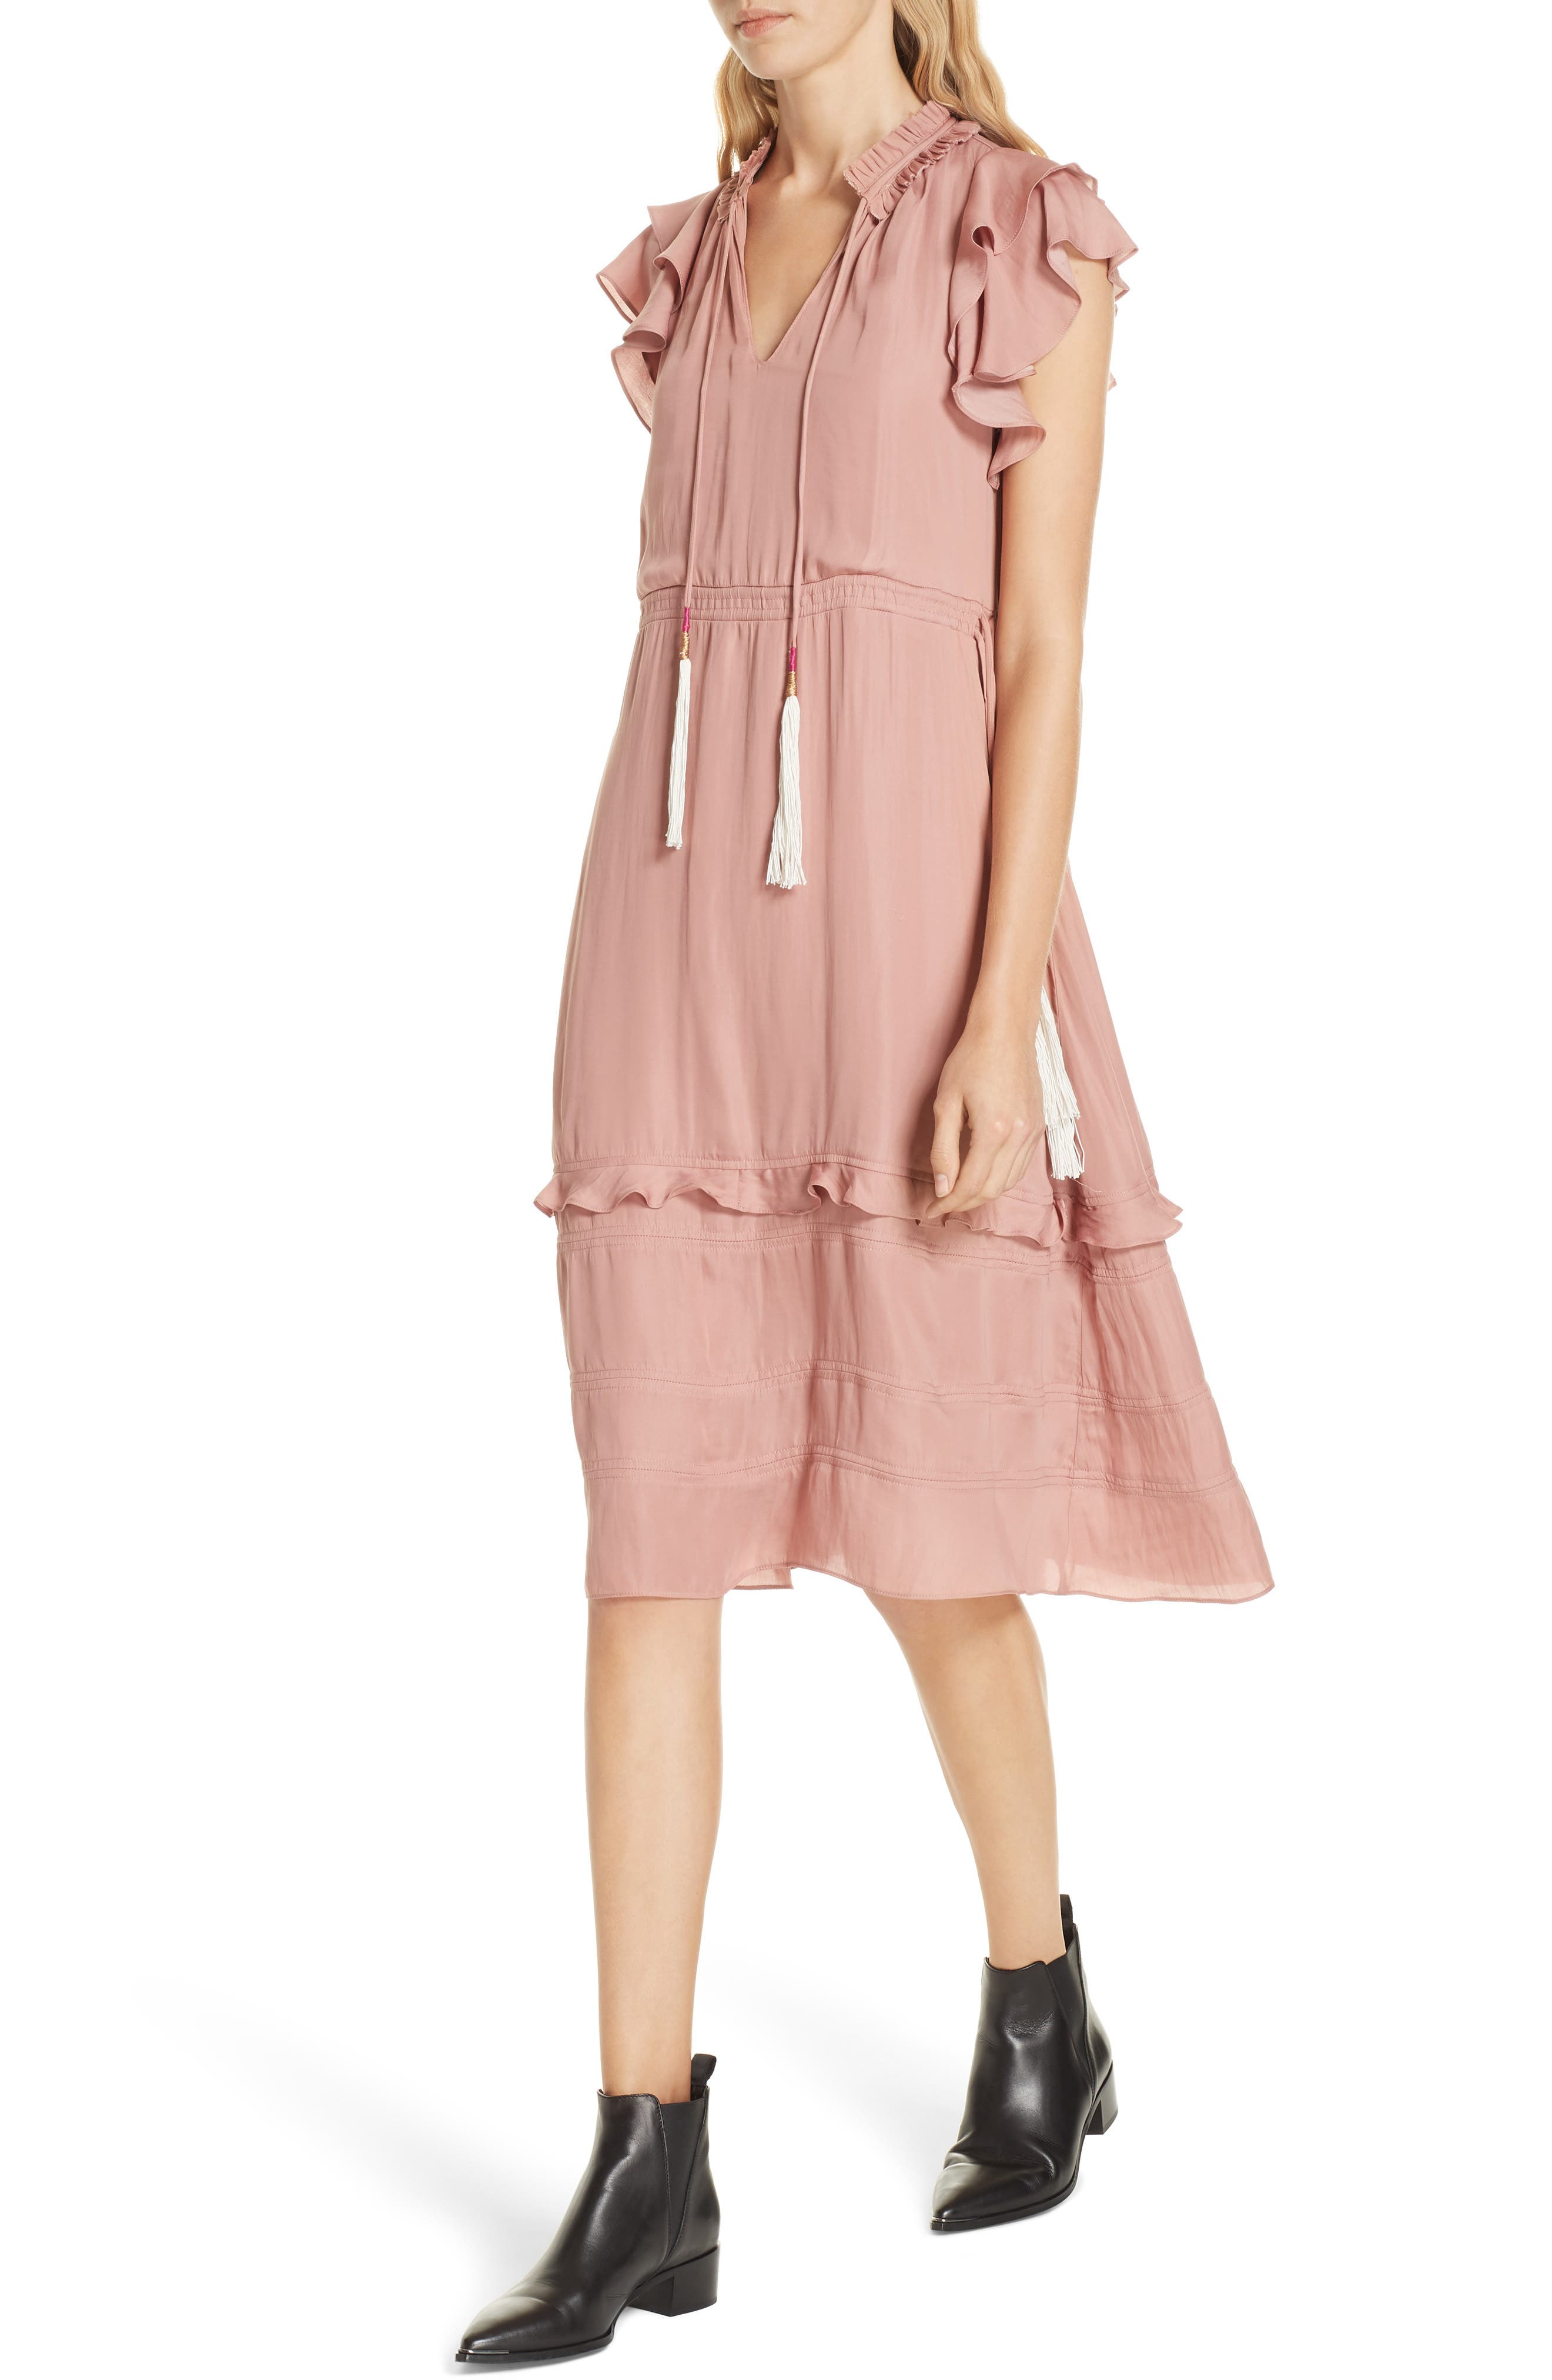 Tassel Tie Midi Dress,                             Alternate thumbnail 4, color,                             ROSE WOOD